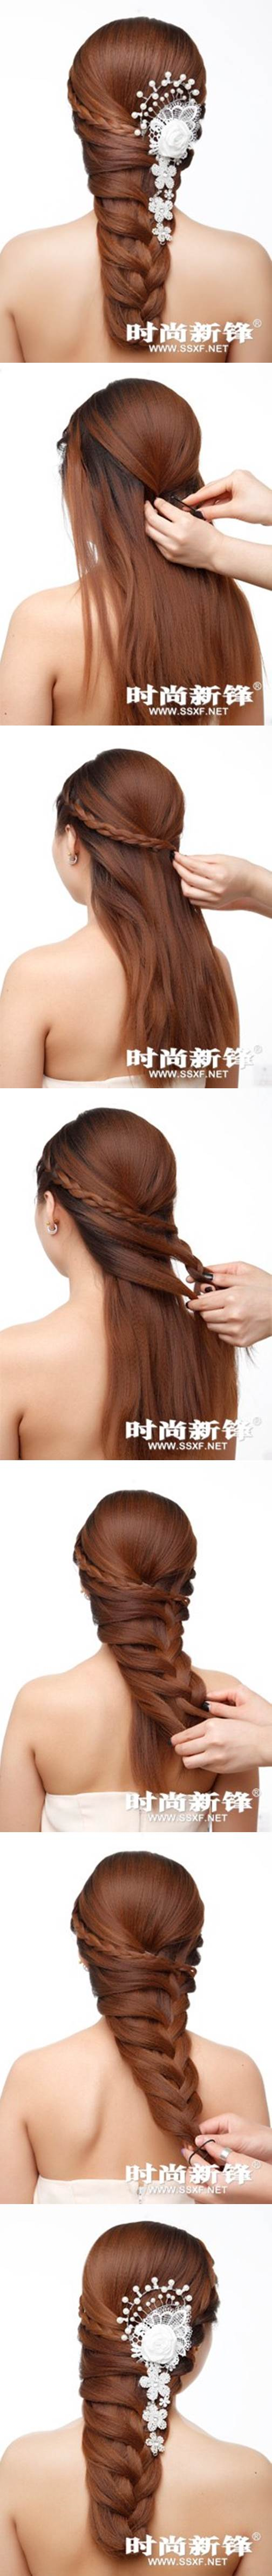 DIY Asymmetrical Braided Hairstyle 2 Wonderful DIY Personalized Braided Hairstyle